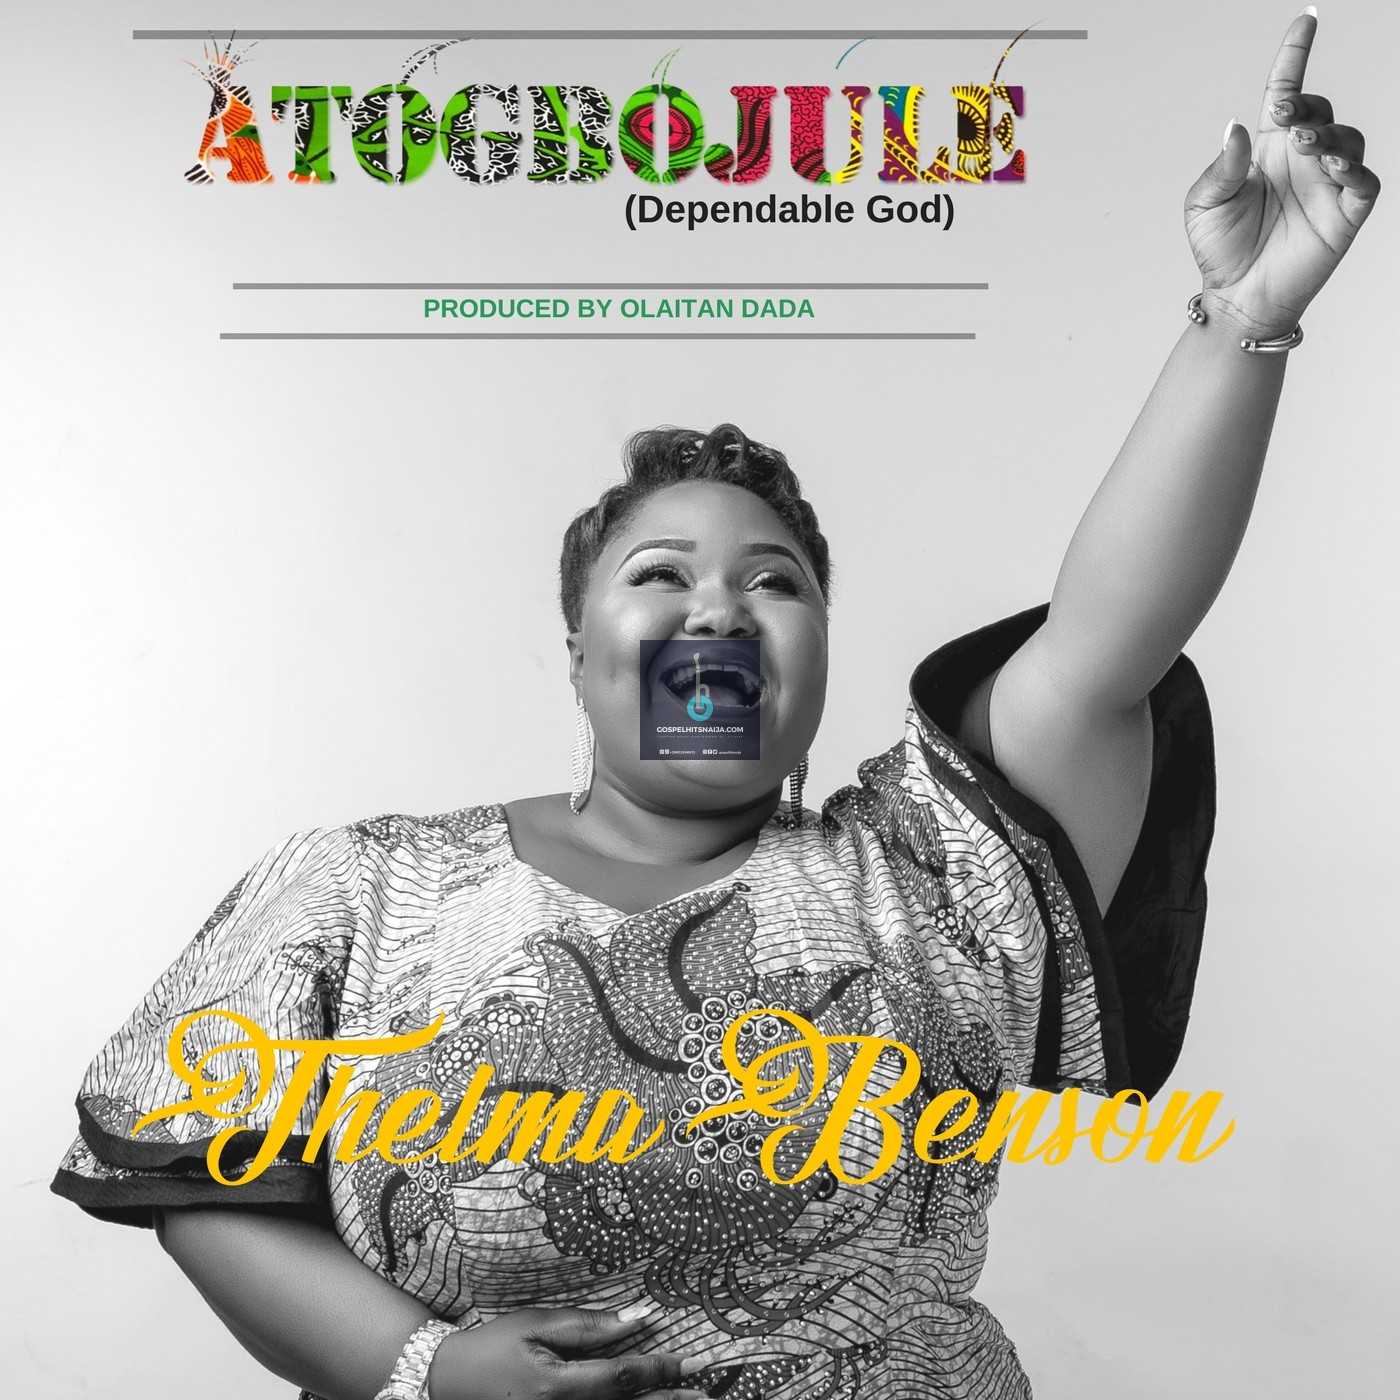 DOWNLOAD MP3] Thelma Benson – Atogbojule (Dependable God) » https